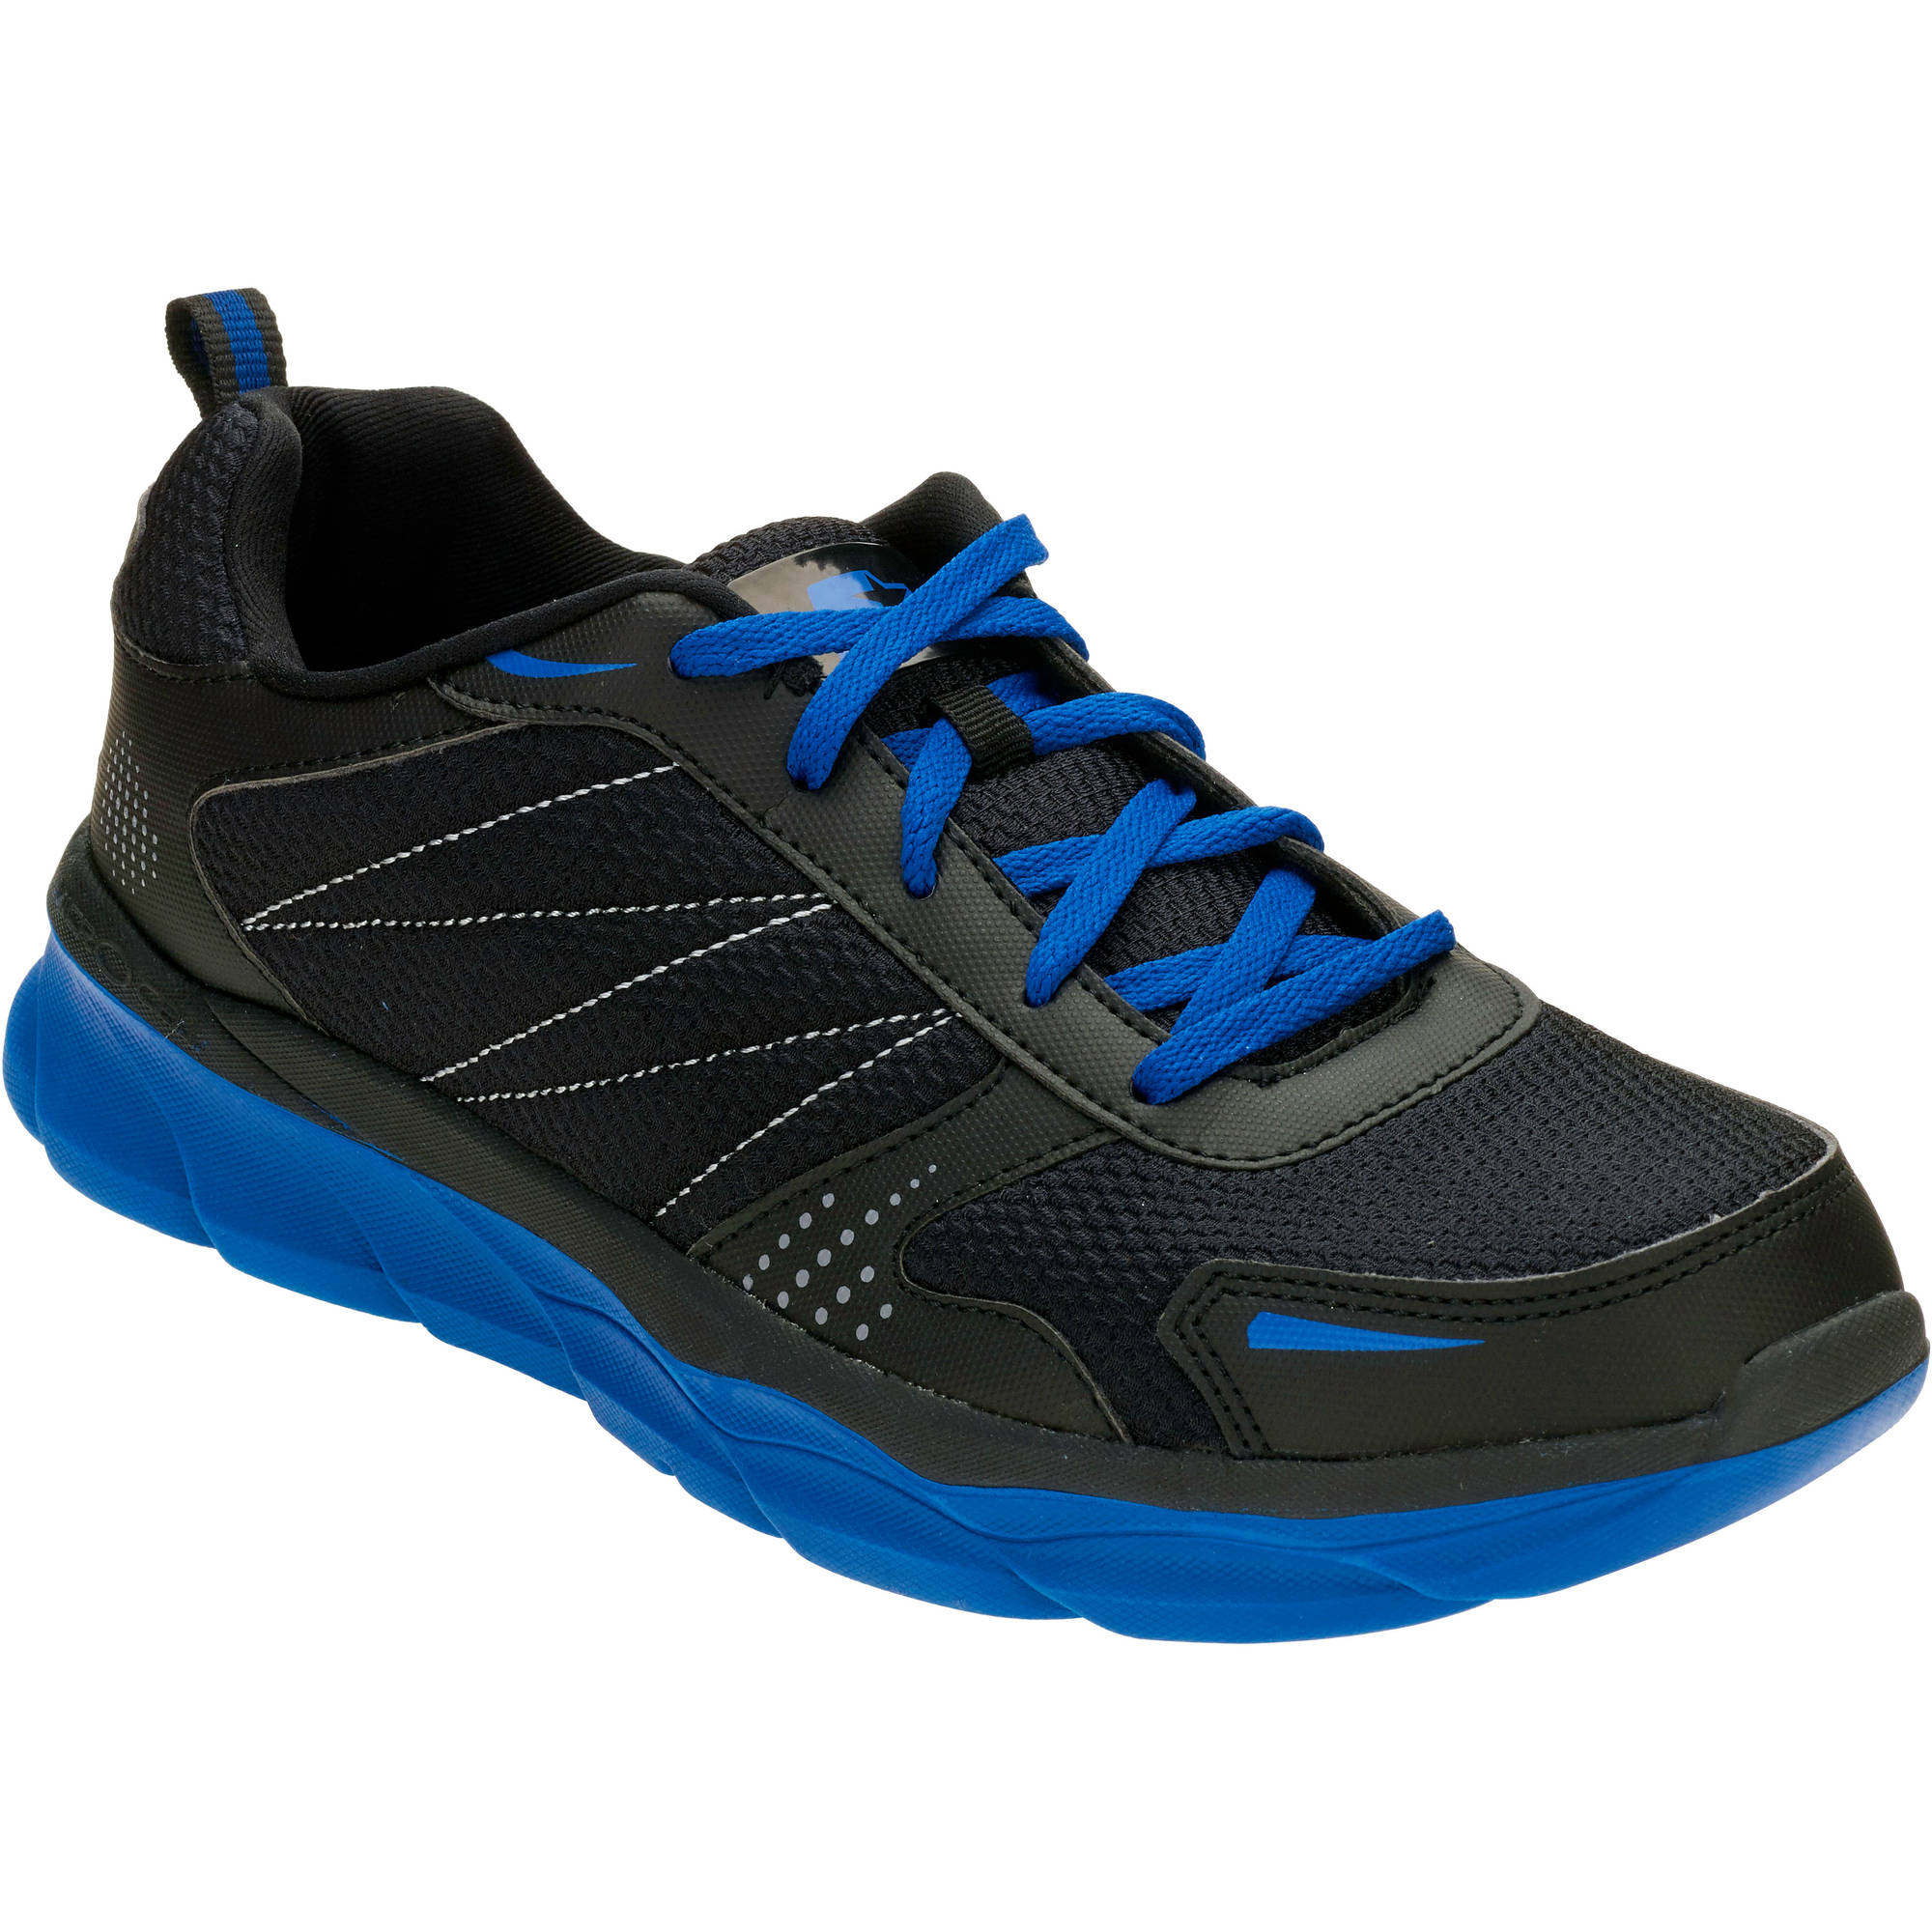 Starter Men's Lightweight Athletic Shoe